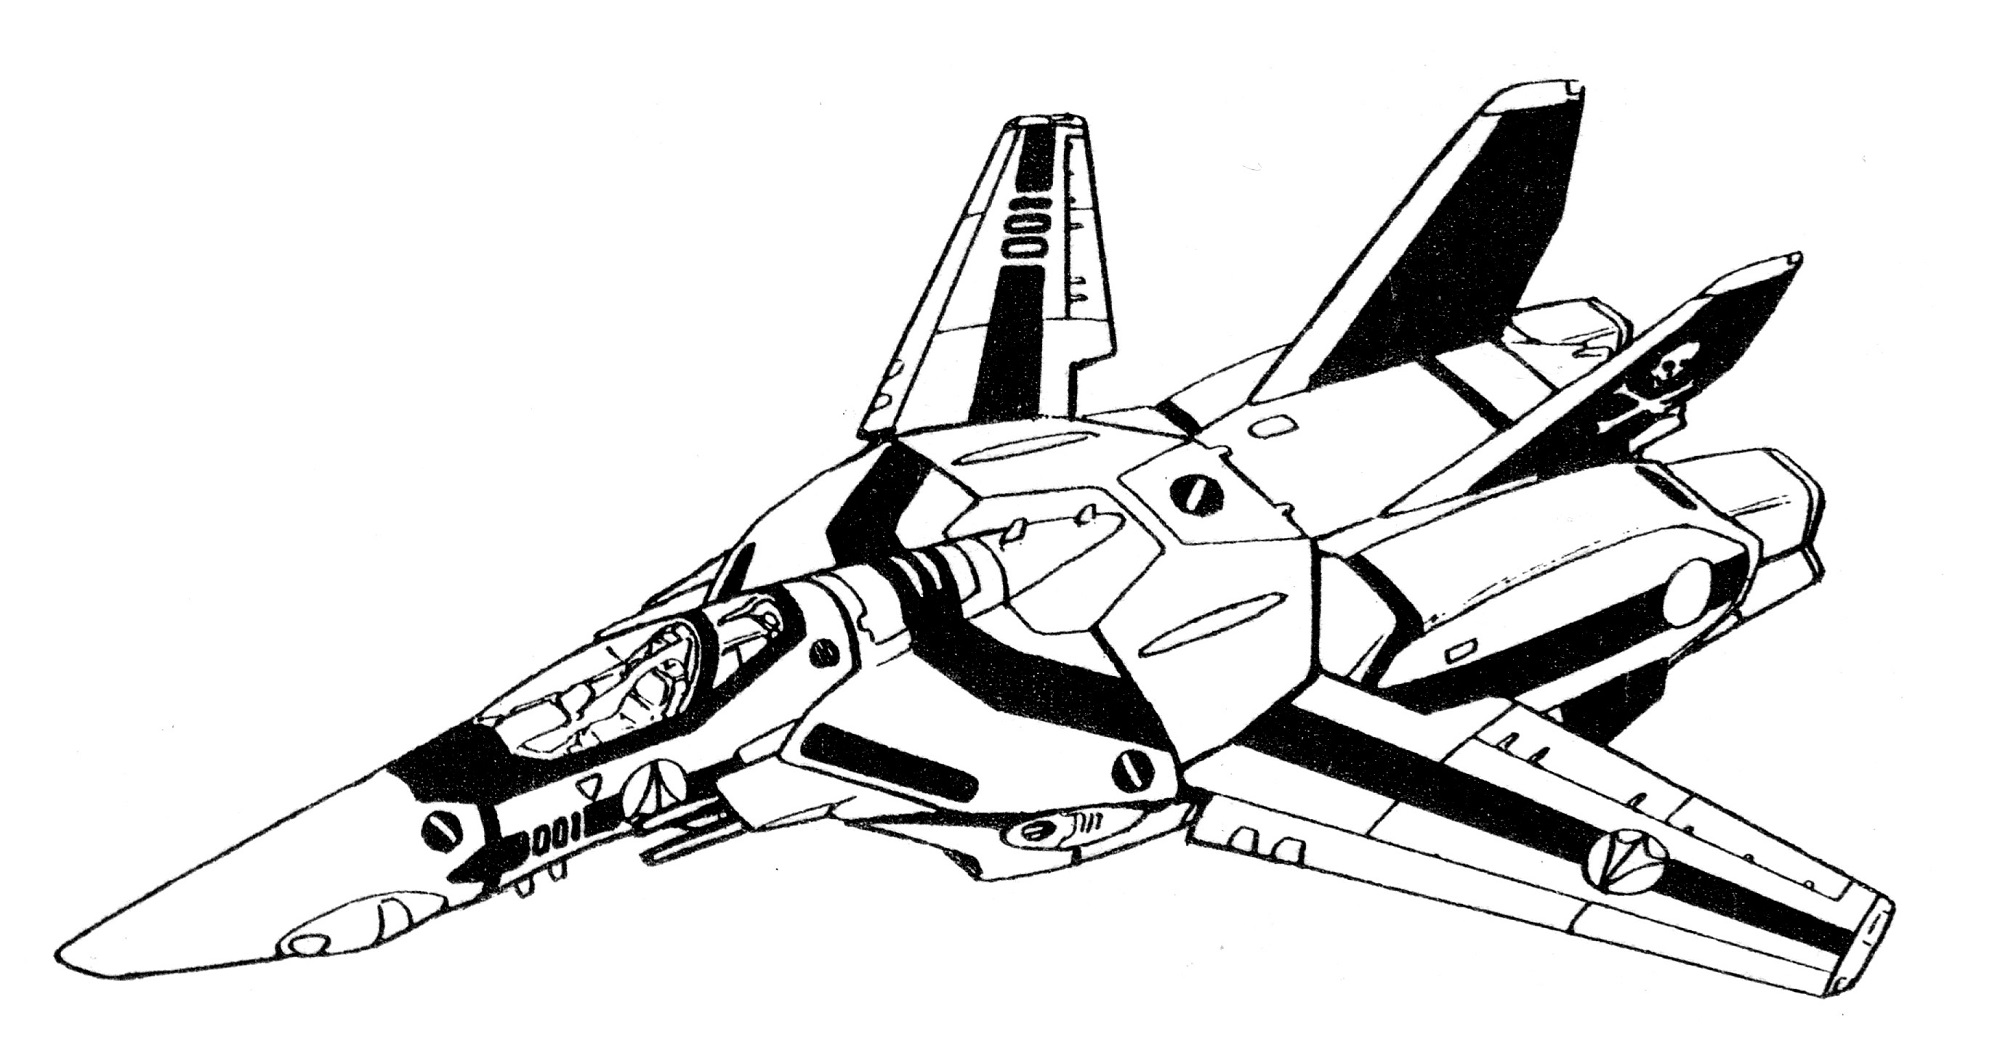 VF-1S Block 1 Valkyrie Fighter 1